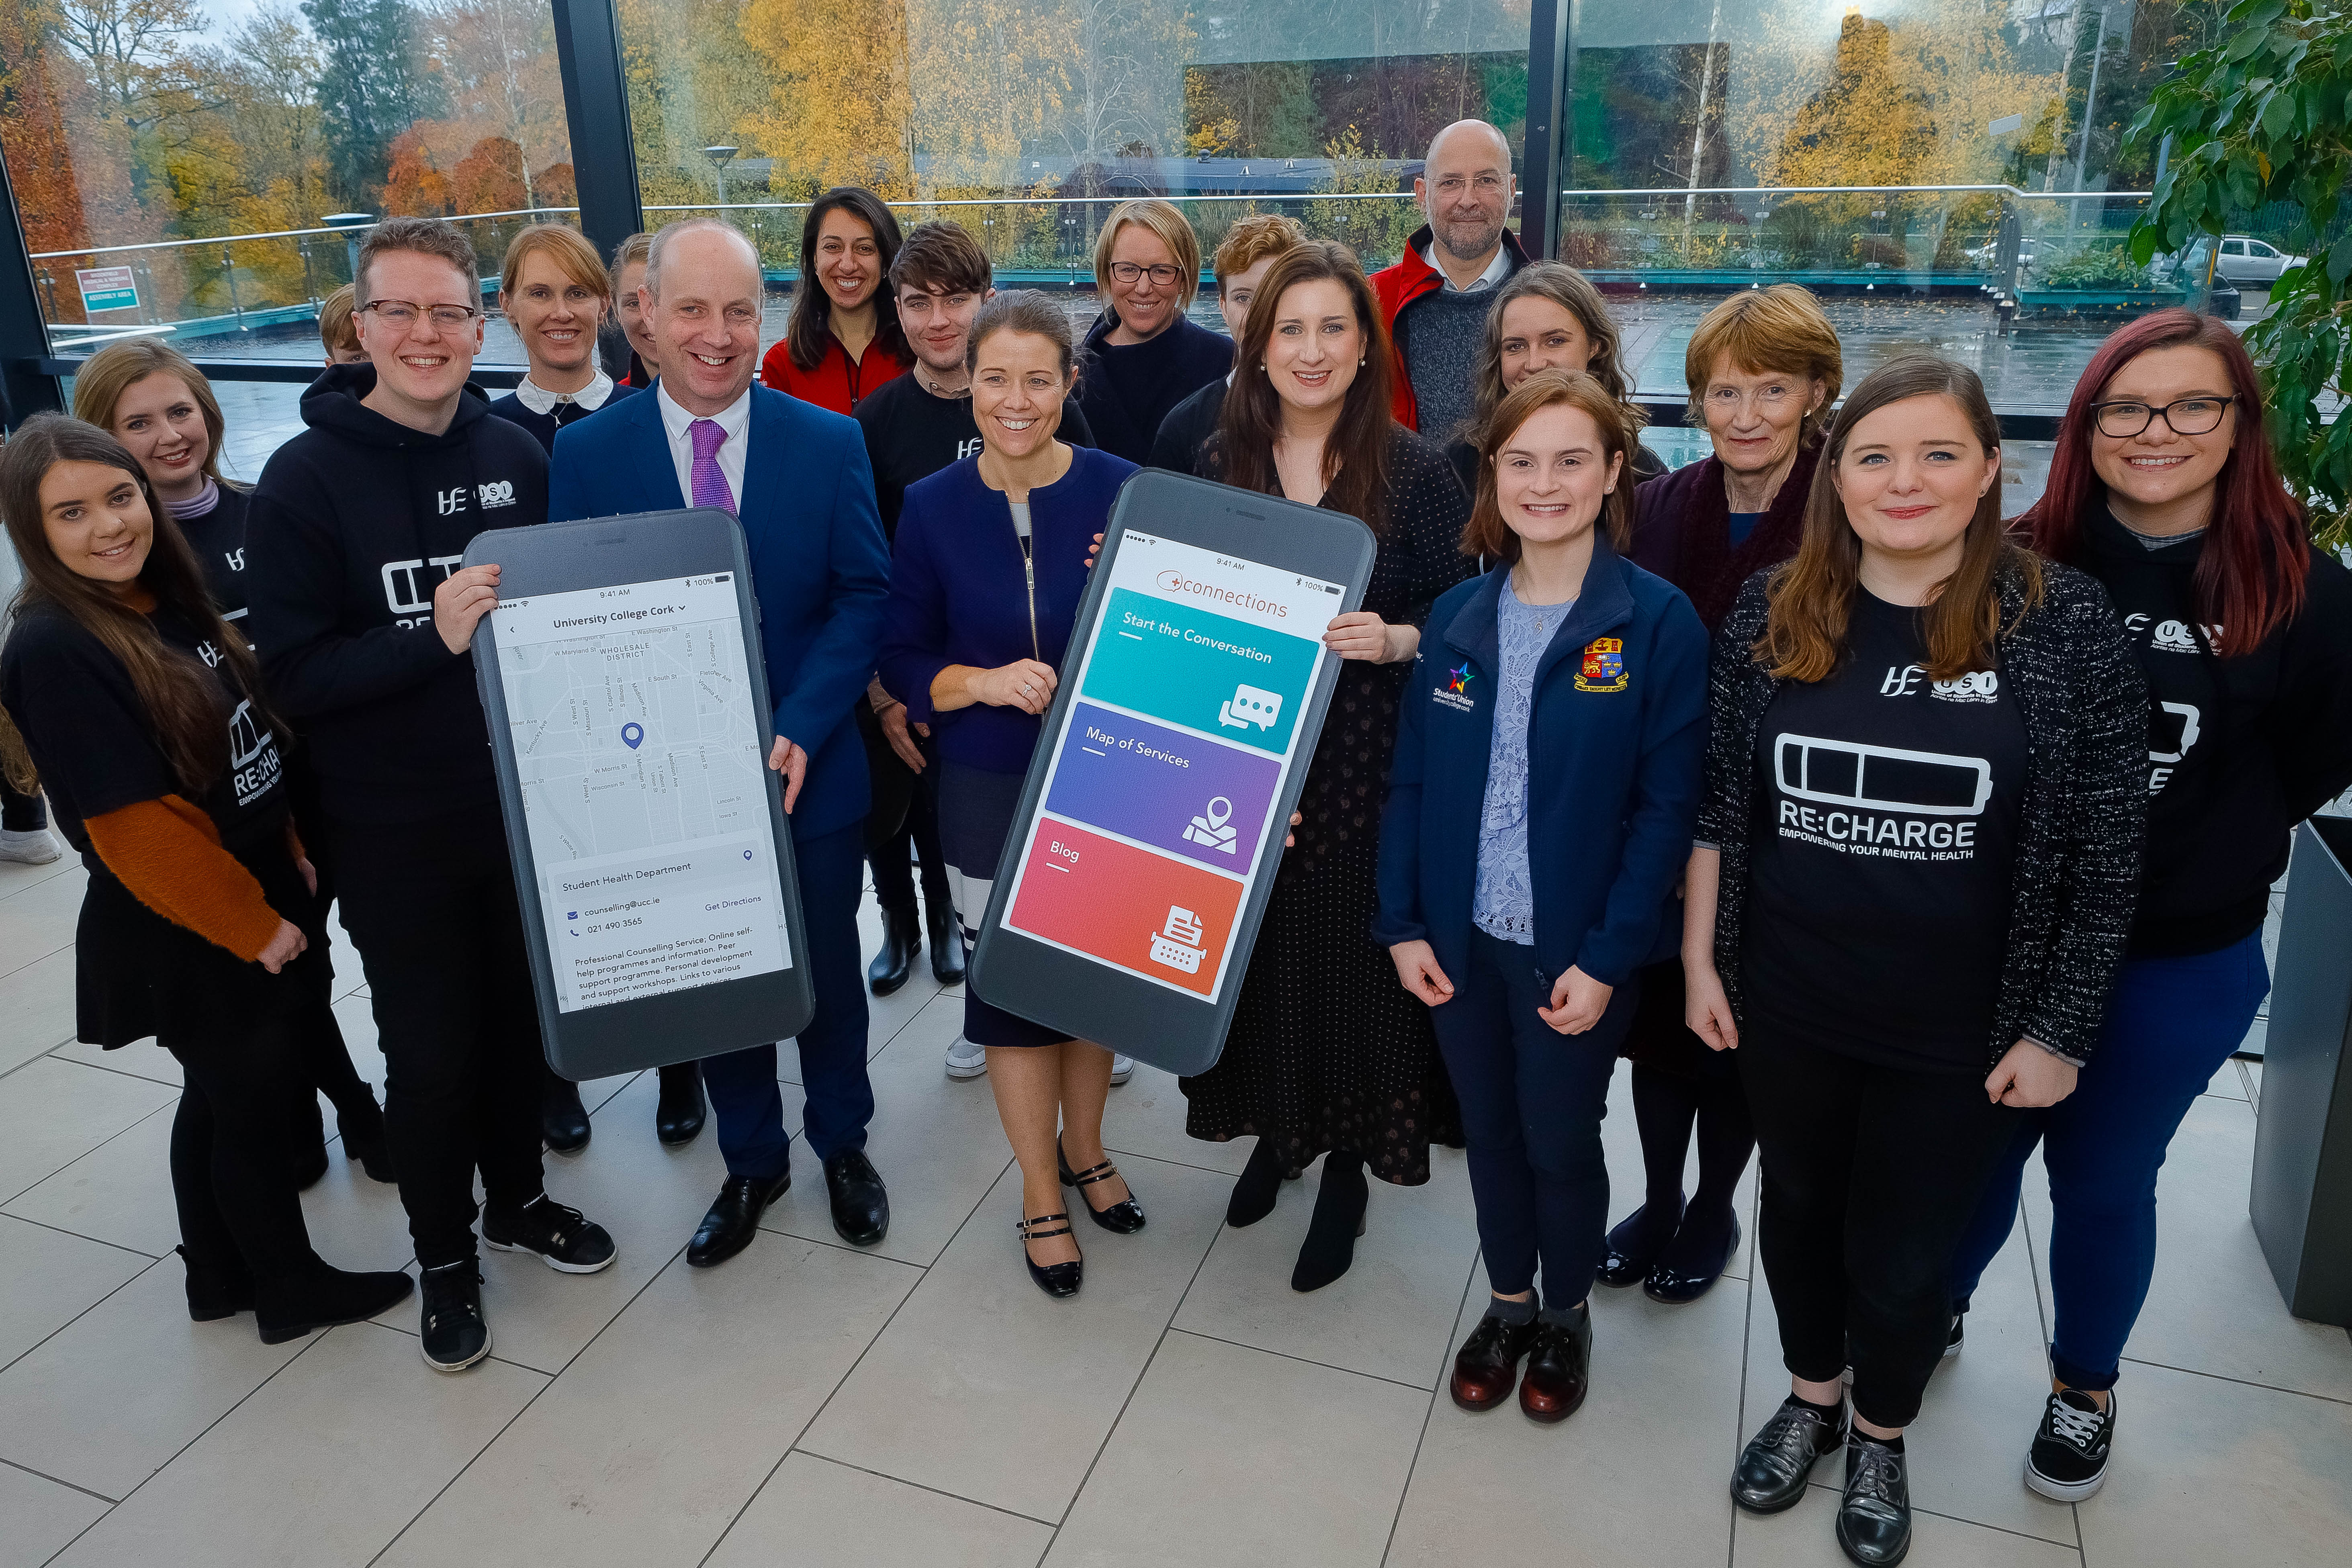 USI officially launch ReCharge Campaign